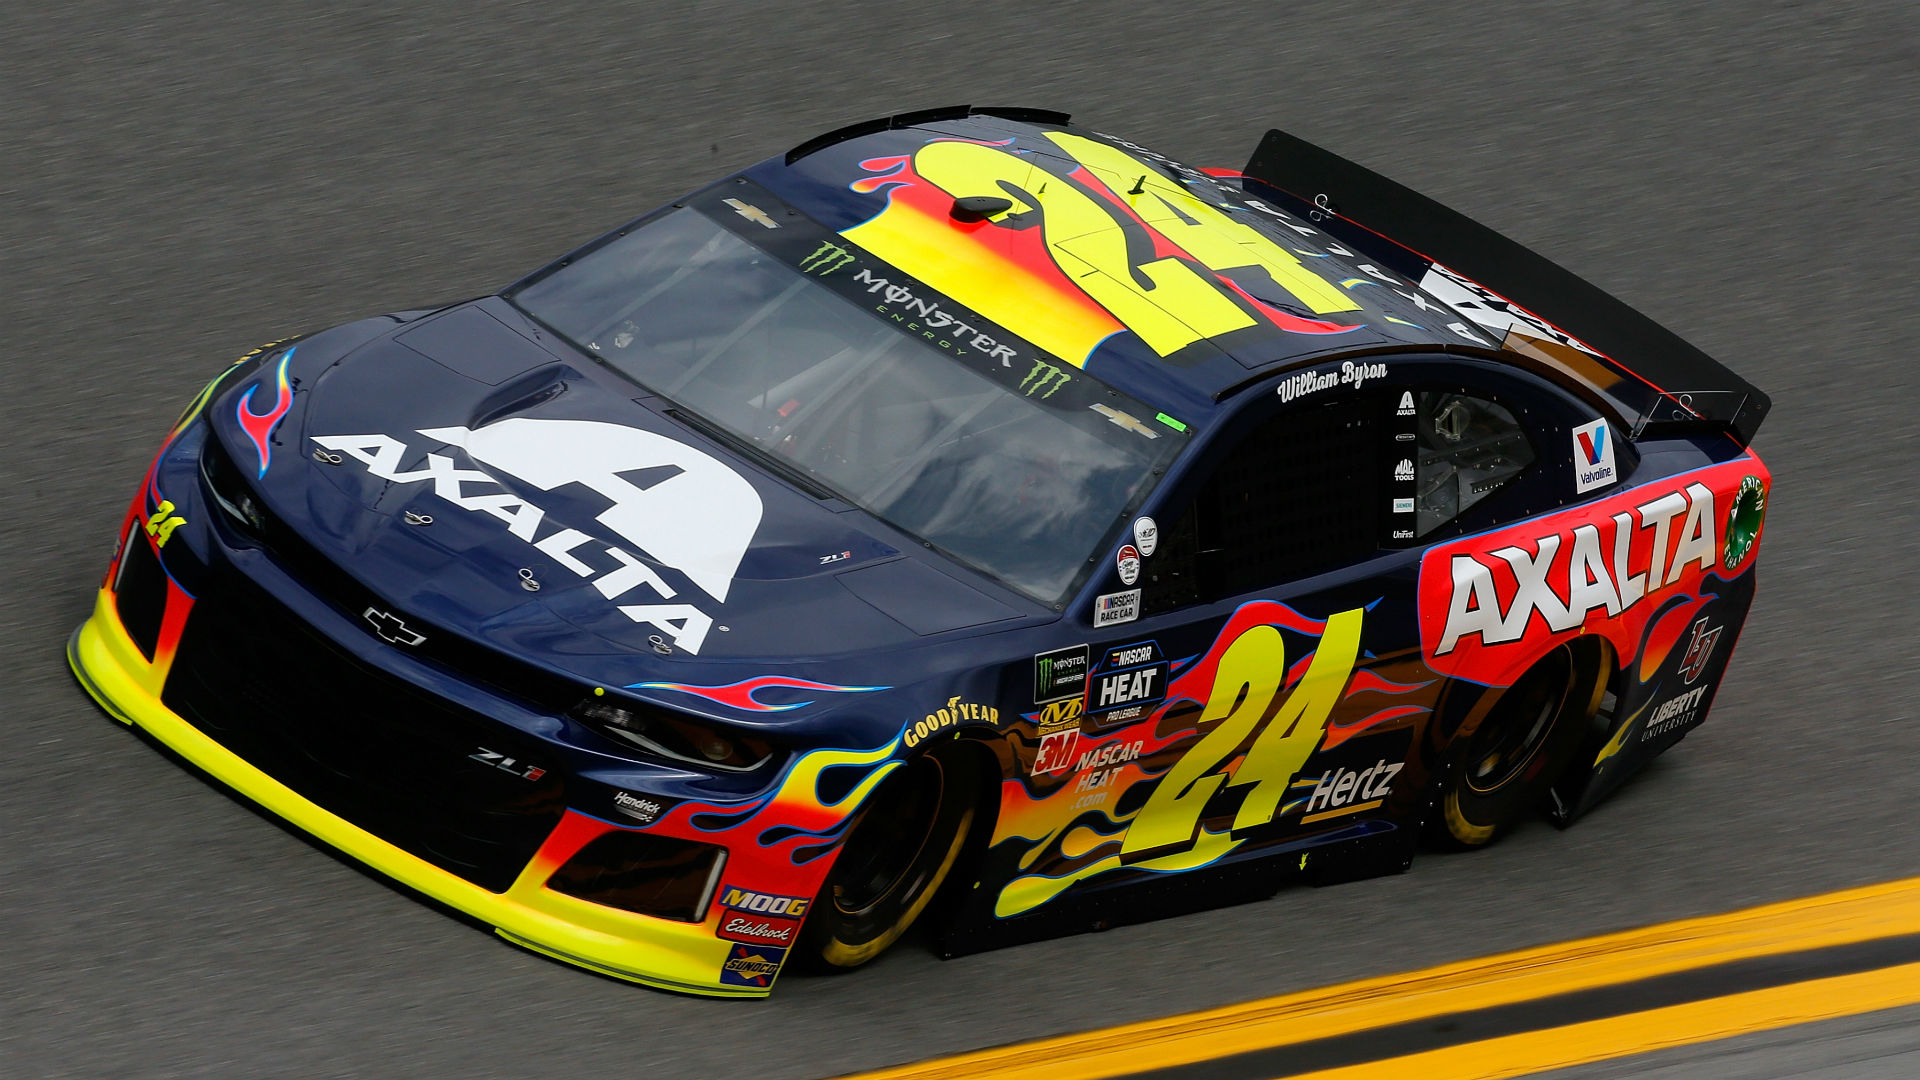 LU-sponsored NASCAR driver William Byron earns pole position for Daytona 500